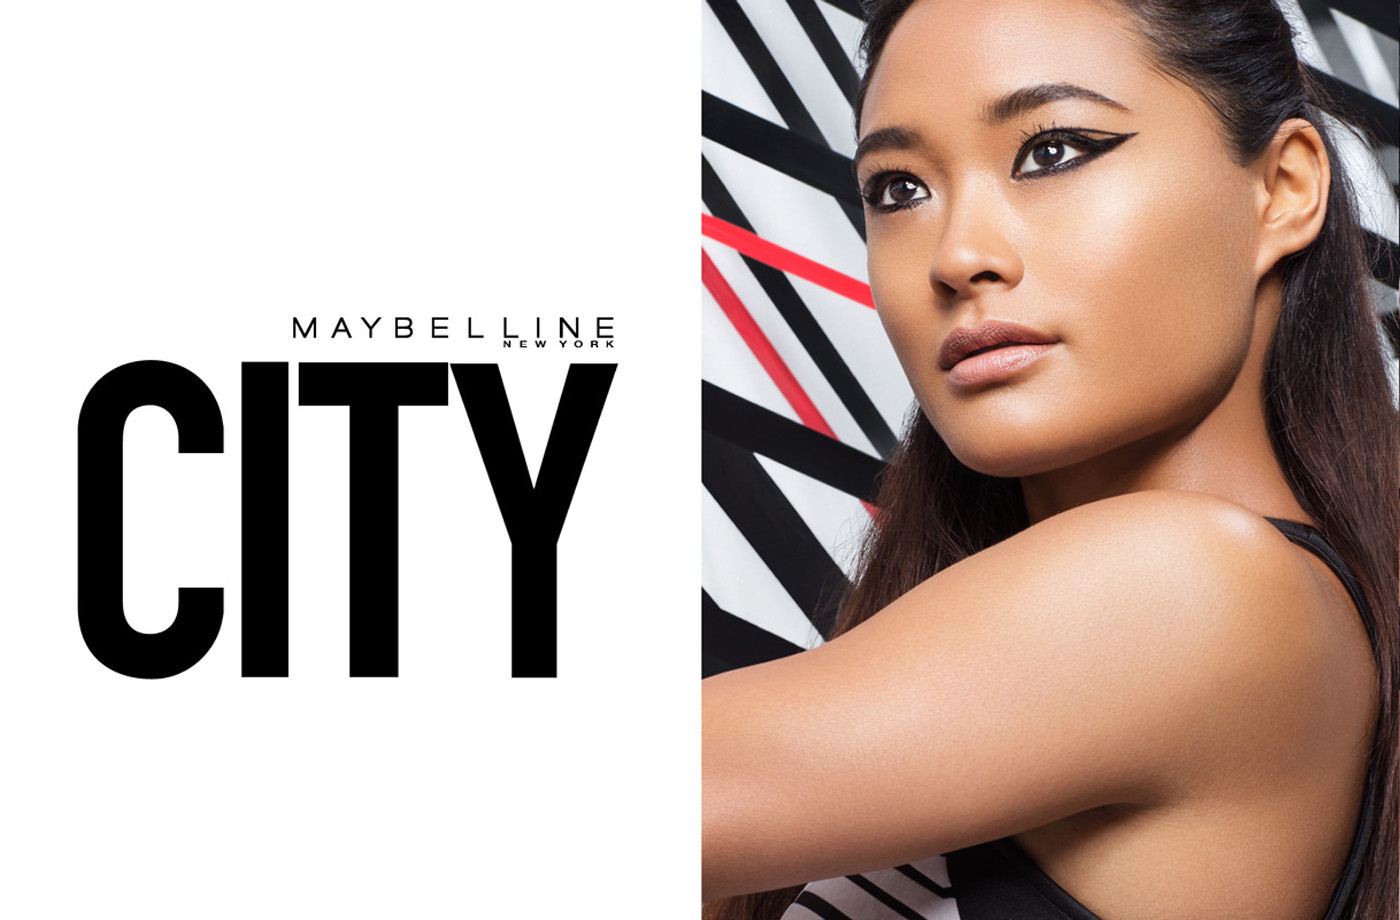 Complice -  Maybelline_CITY_03.jpg